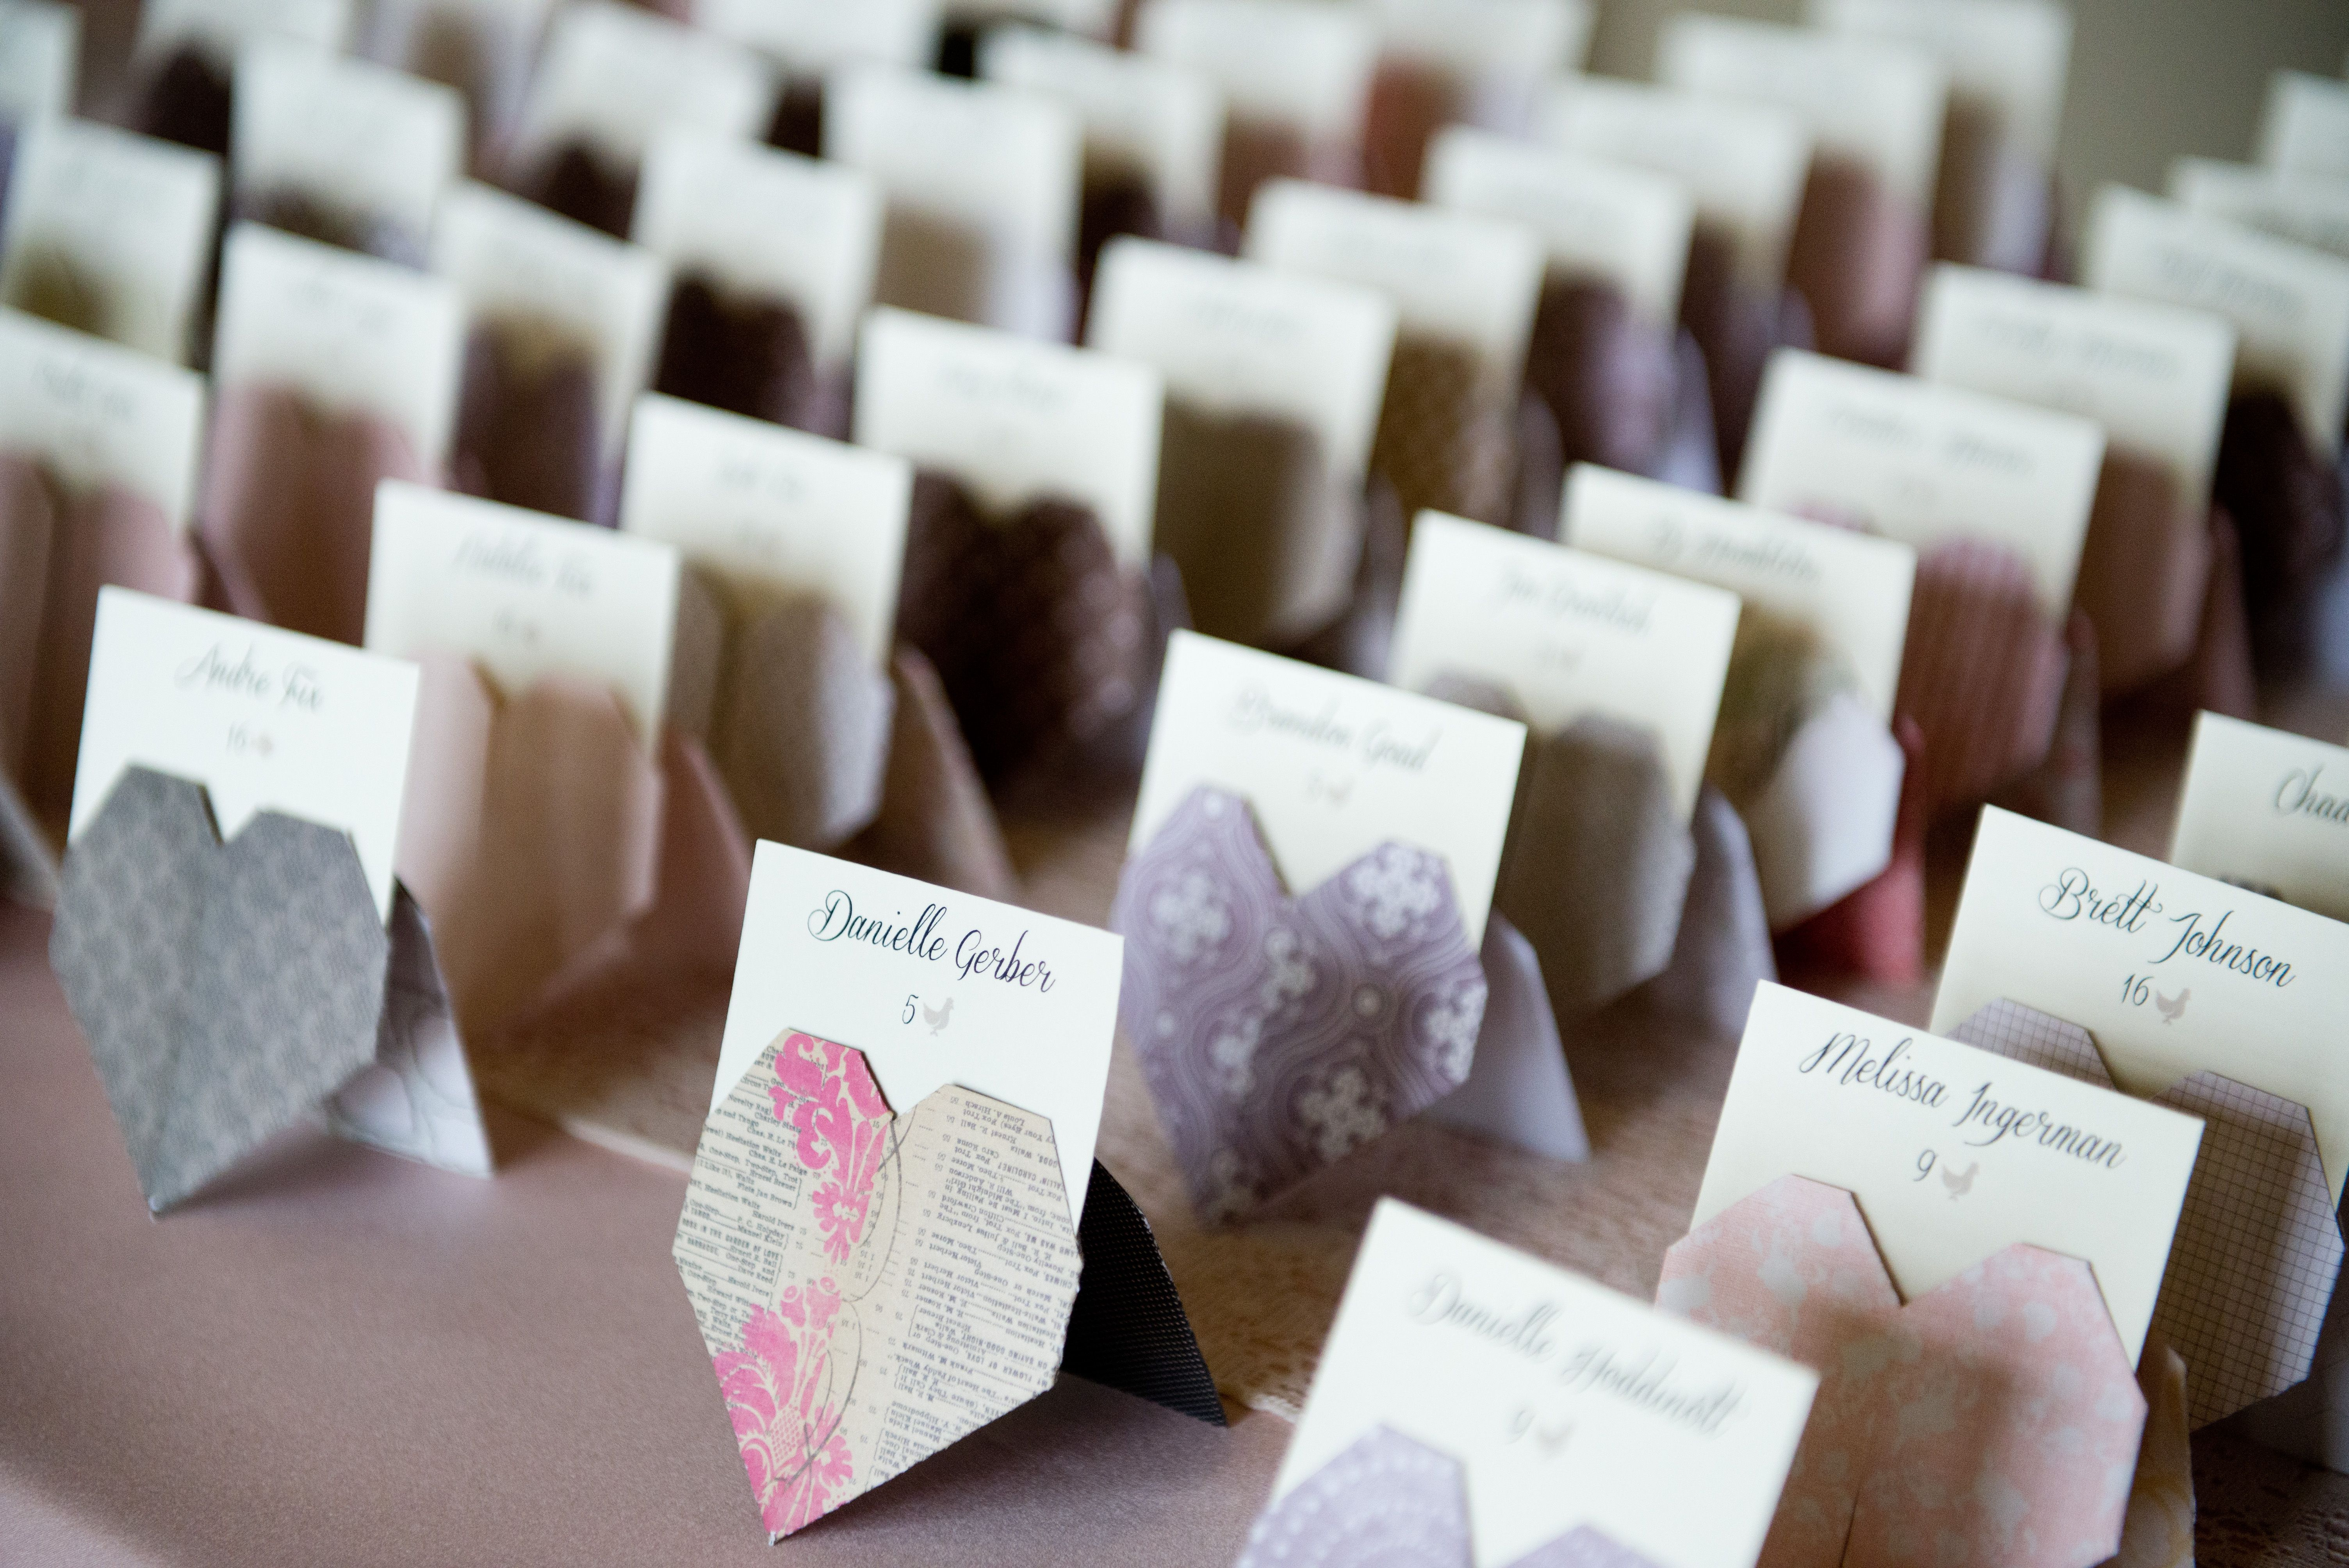 DIY Origami Heart Escort Cards - instead of using for escort cards, use for food labels